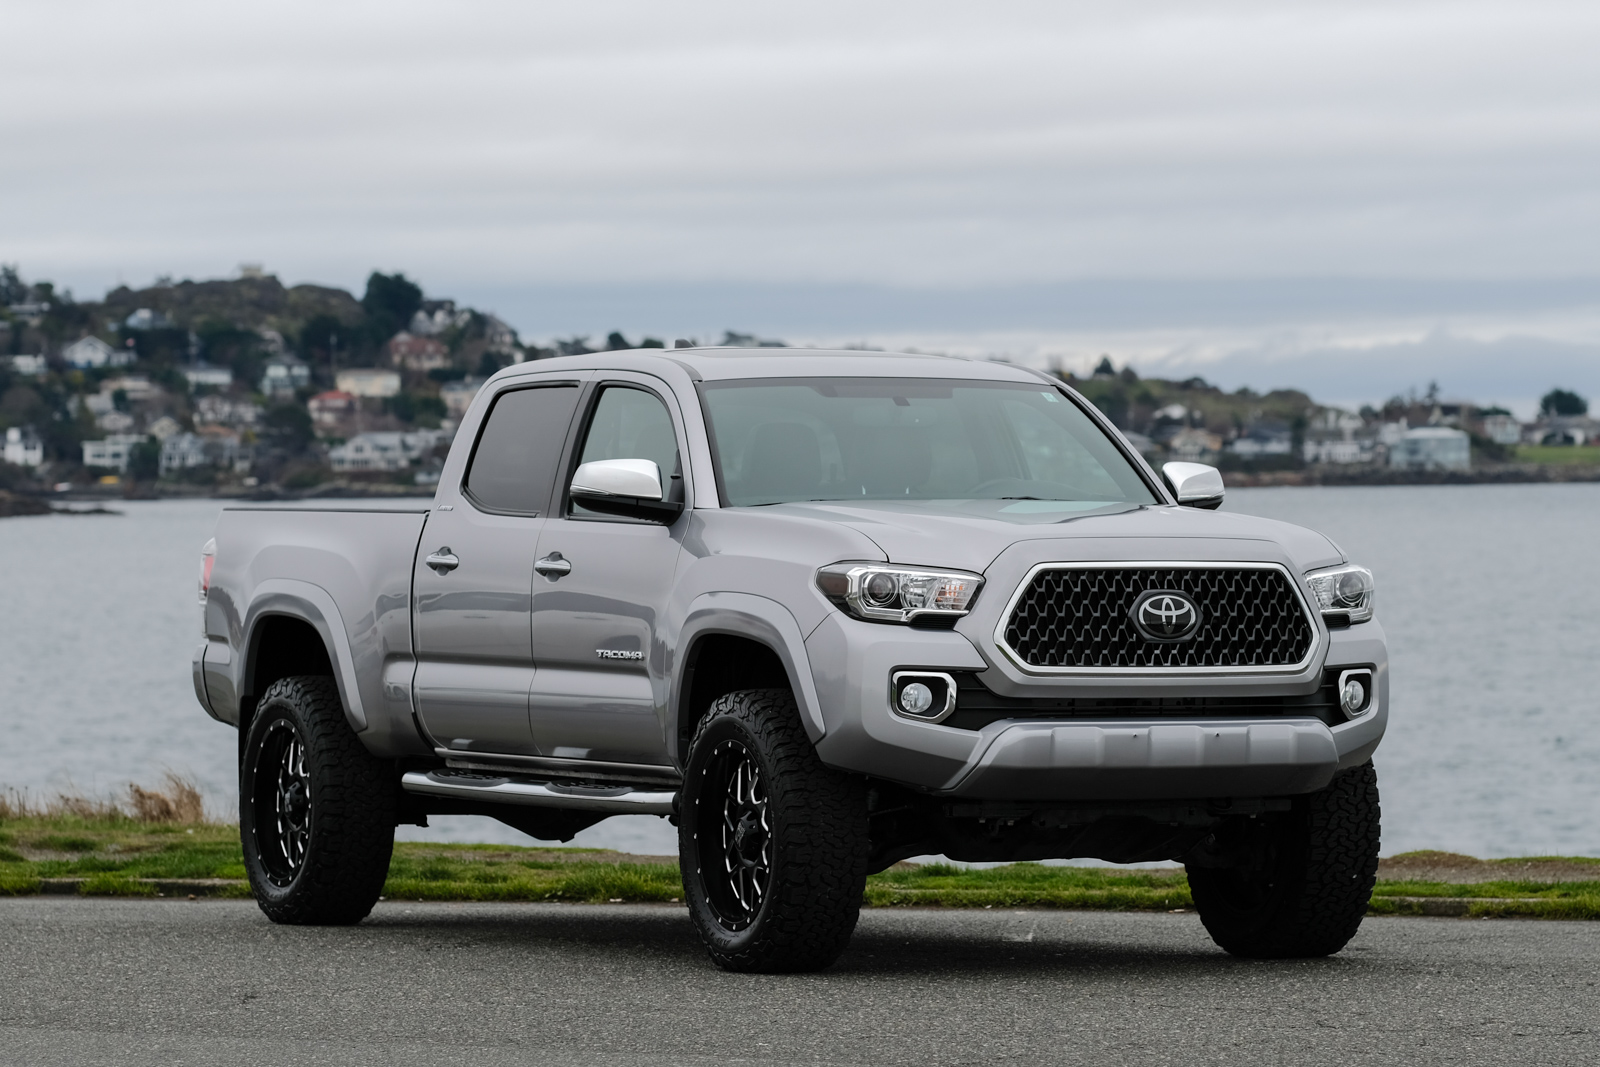 Toyota Tacoma 2015-2018 Service Manual: Inspection